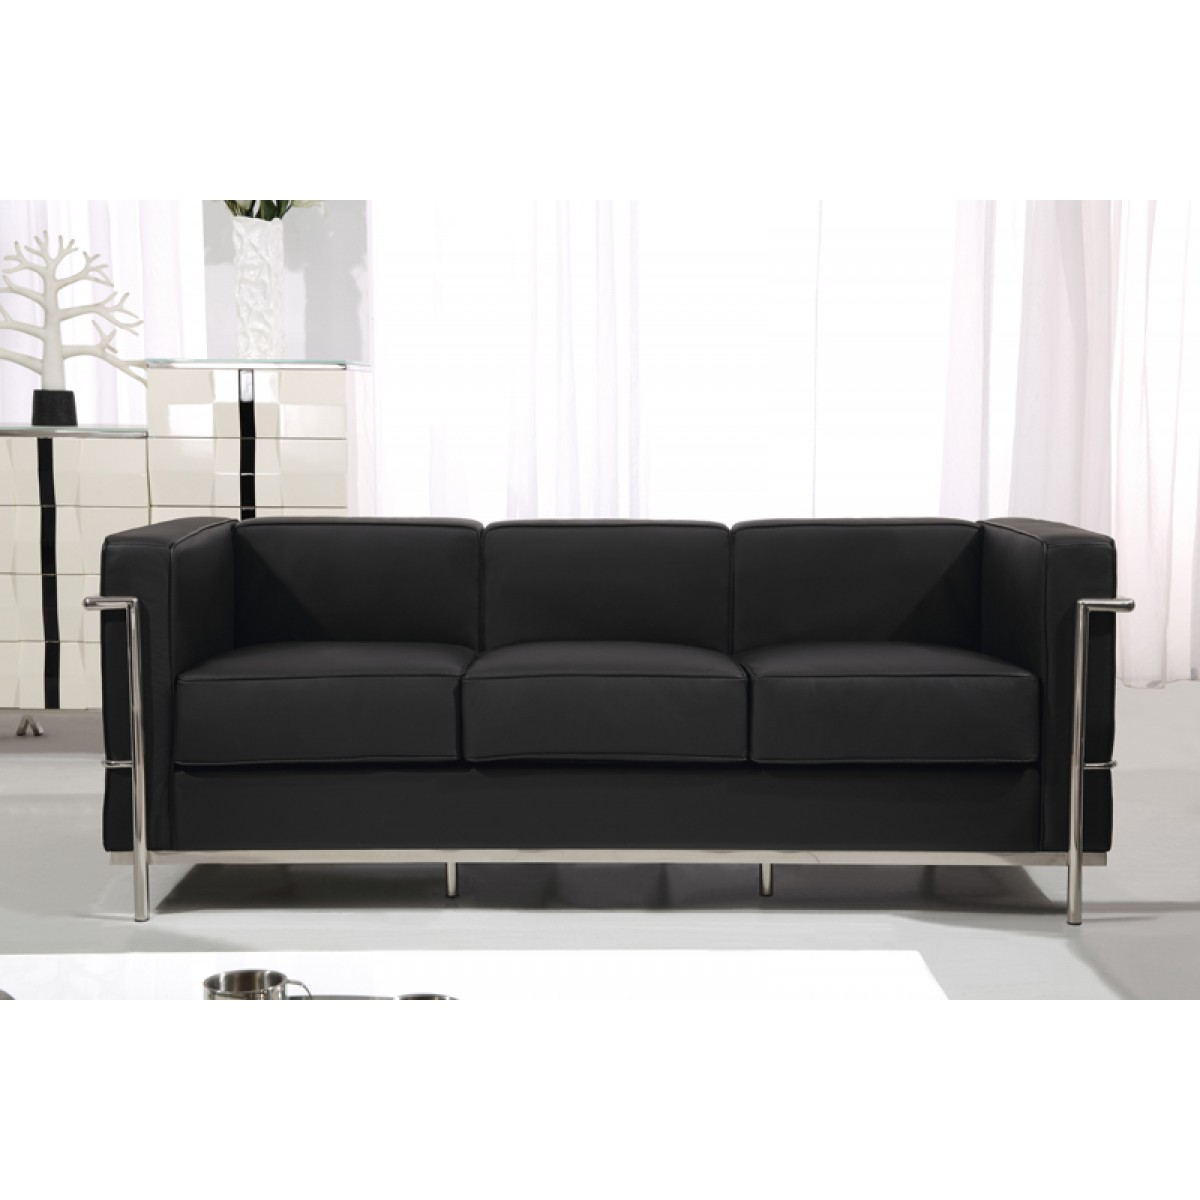 fauteuil canap s en cuir le corbusier. Black Bedroom Furniture Sets. Home Design Ideas